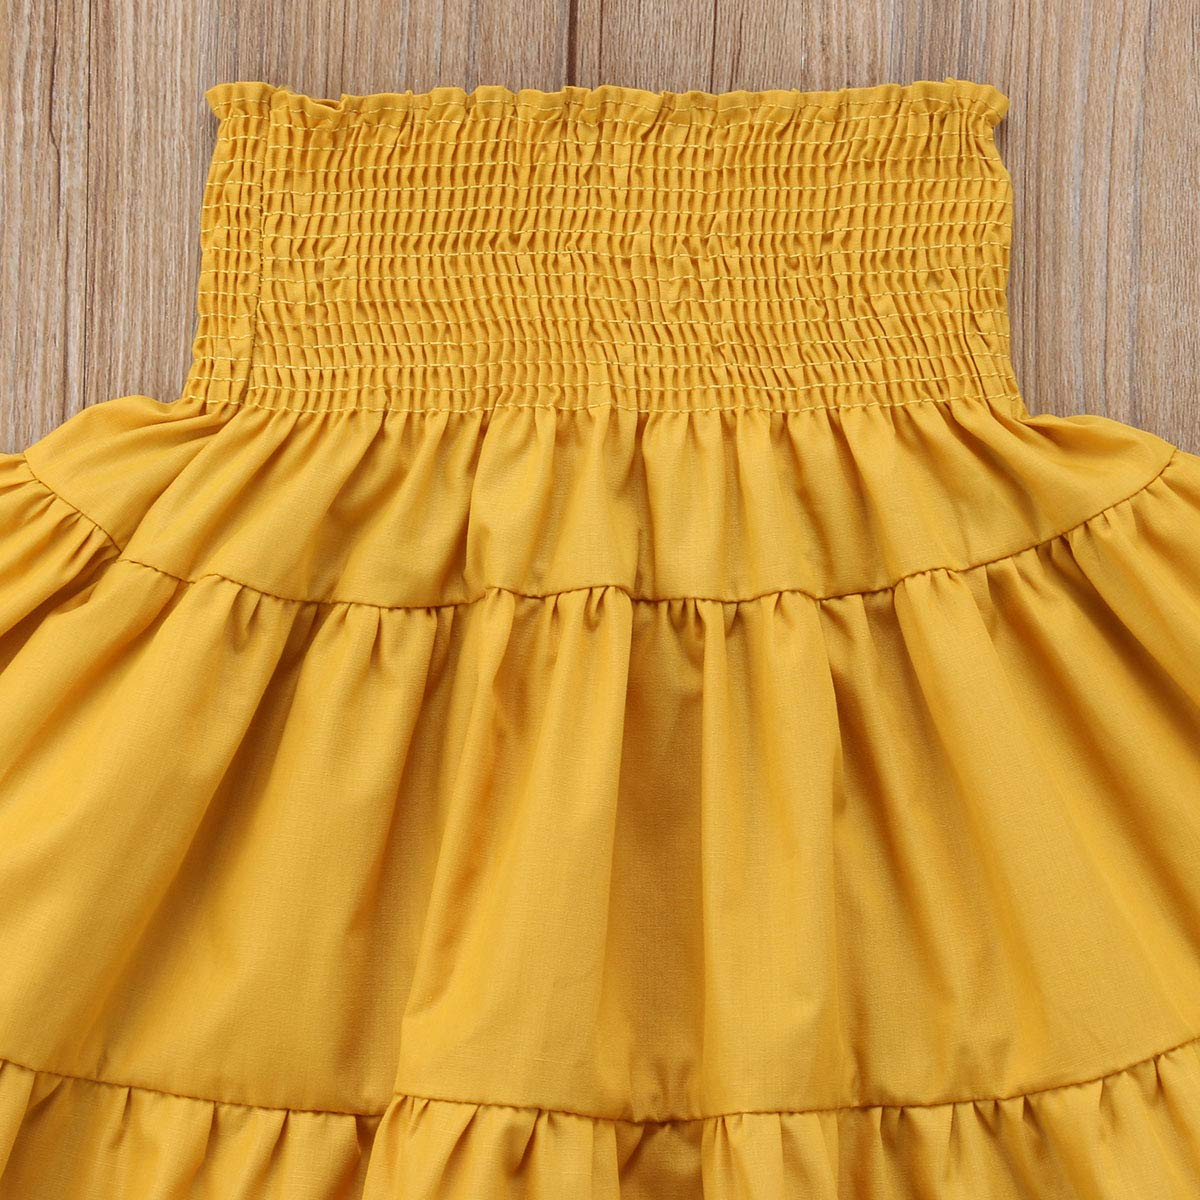 remeo suit Todder Baby Girl 1-5Years Pleated Maxi Skirt Solid Skirt with Elastic Waistband